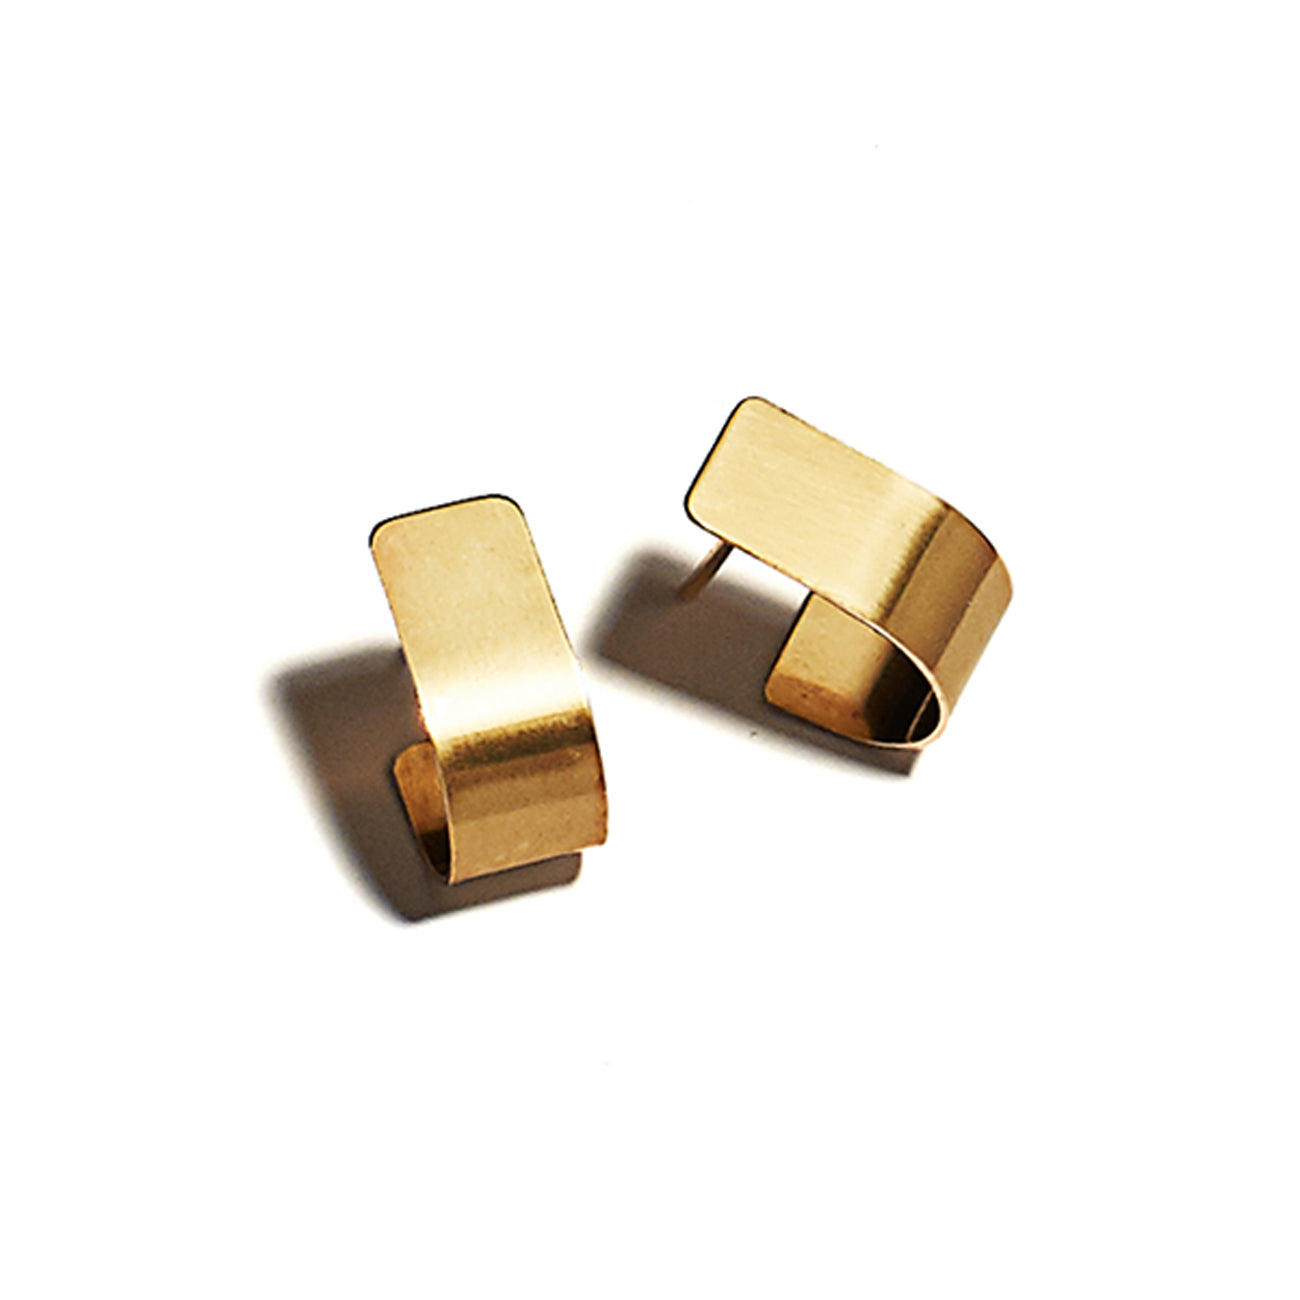 bend studs in 10k gold